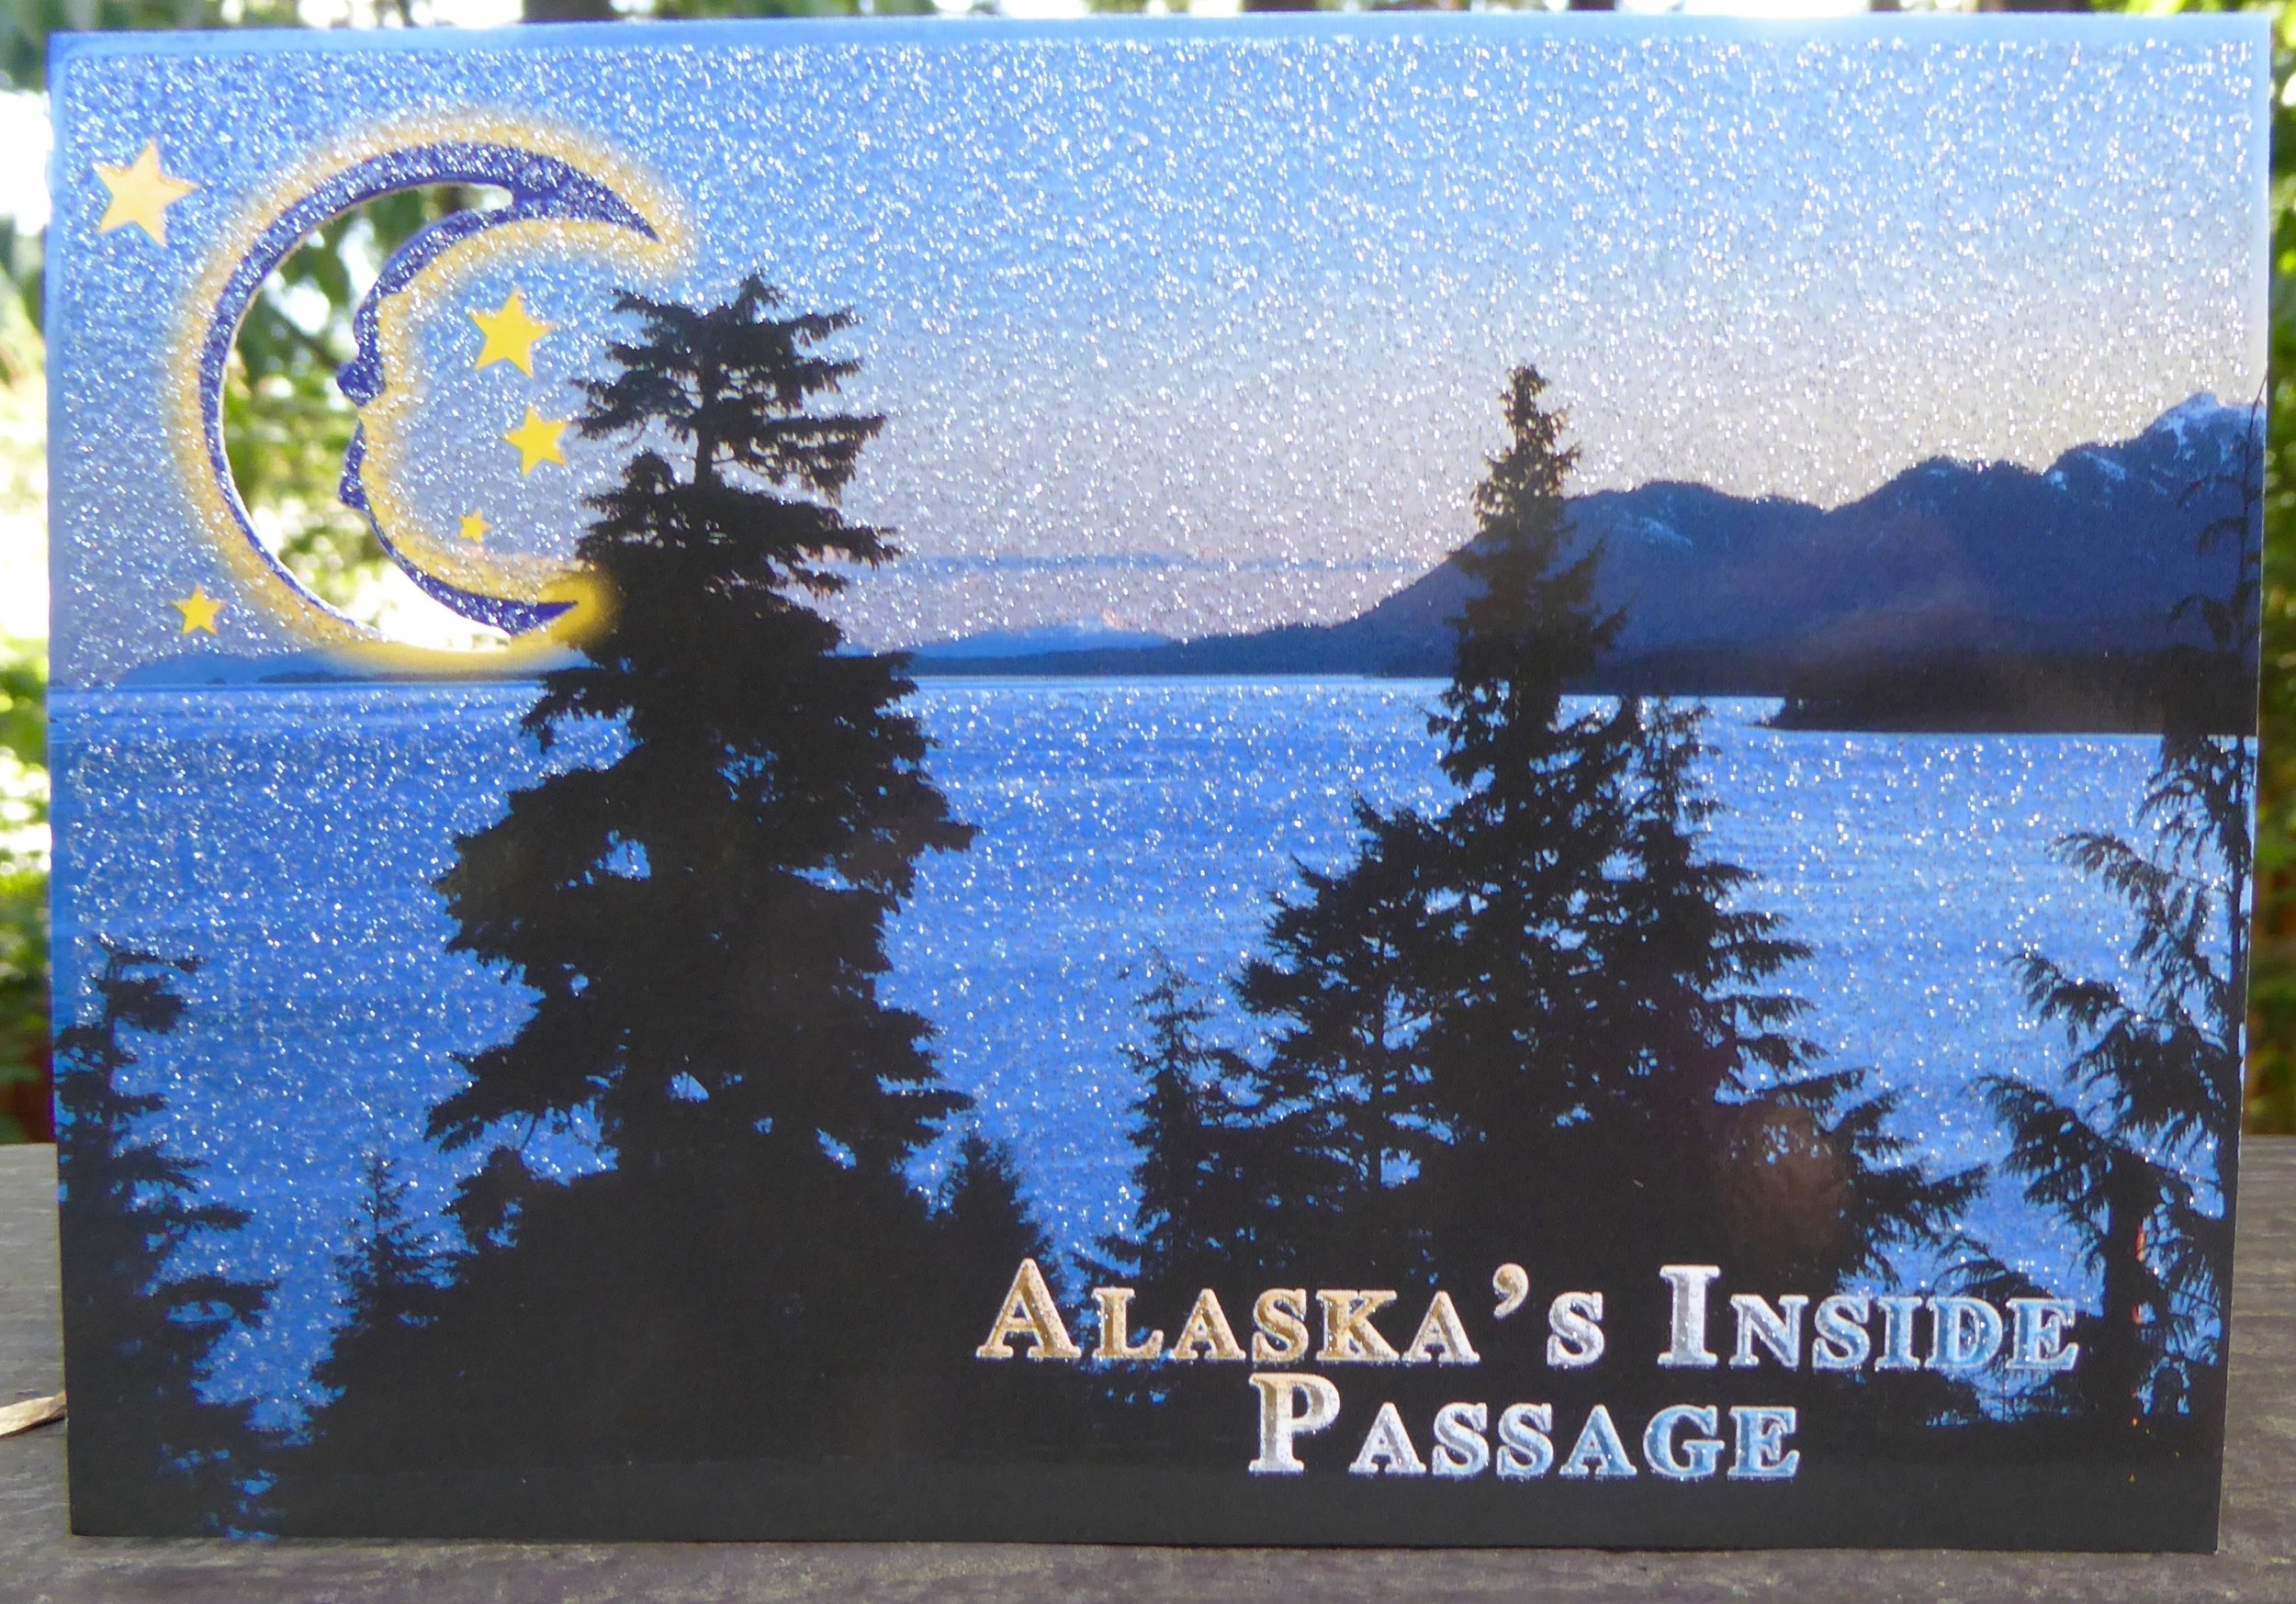 We are beginning the Alaskan part of the Inside passage today